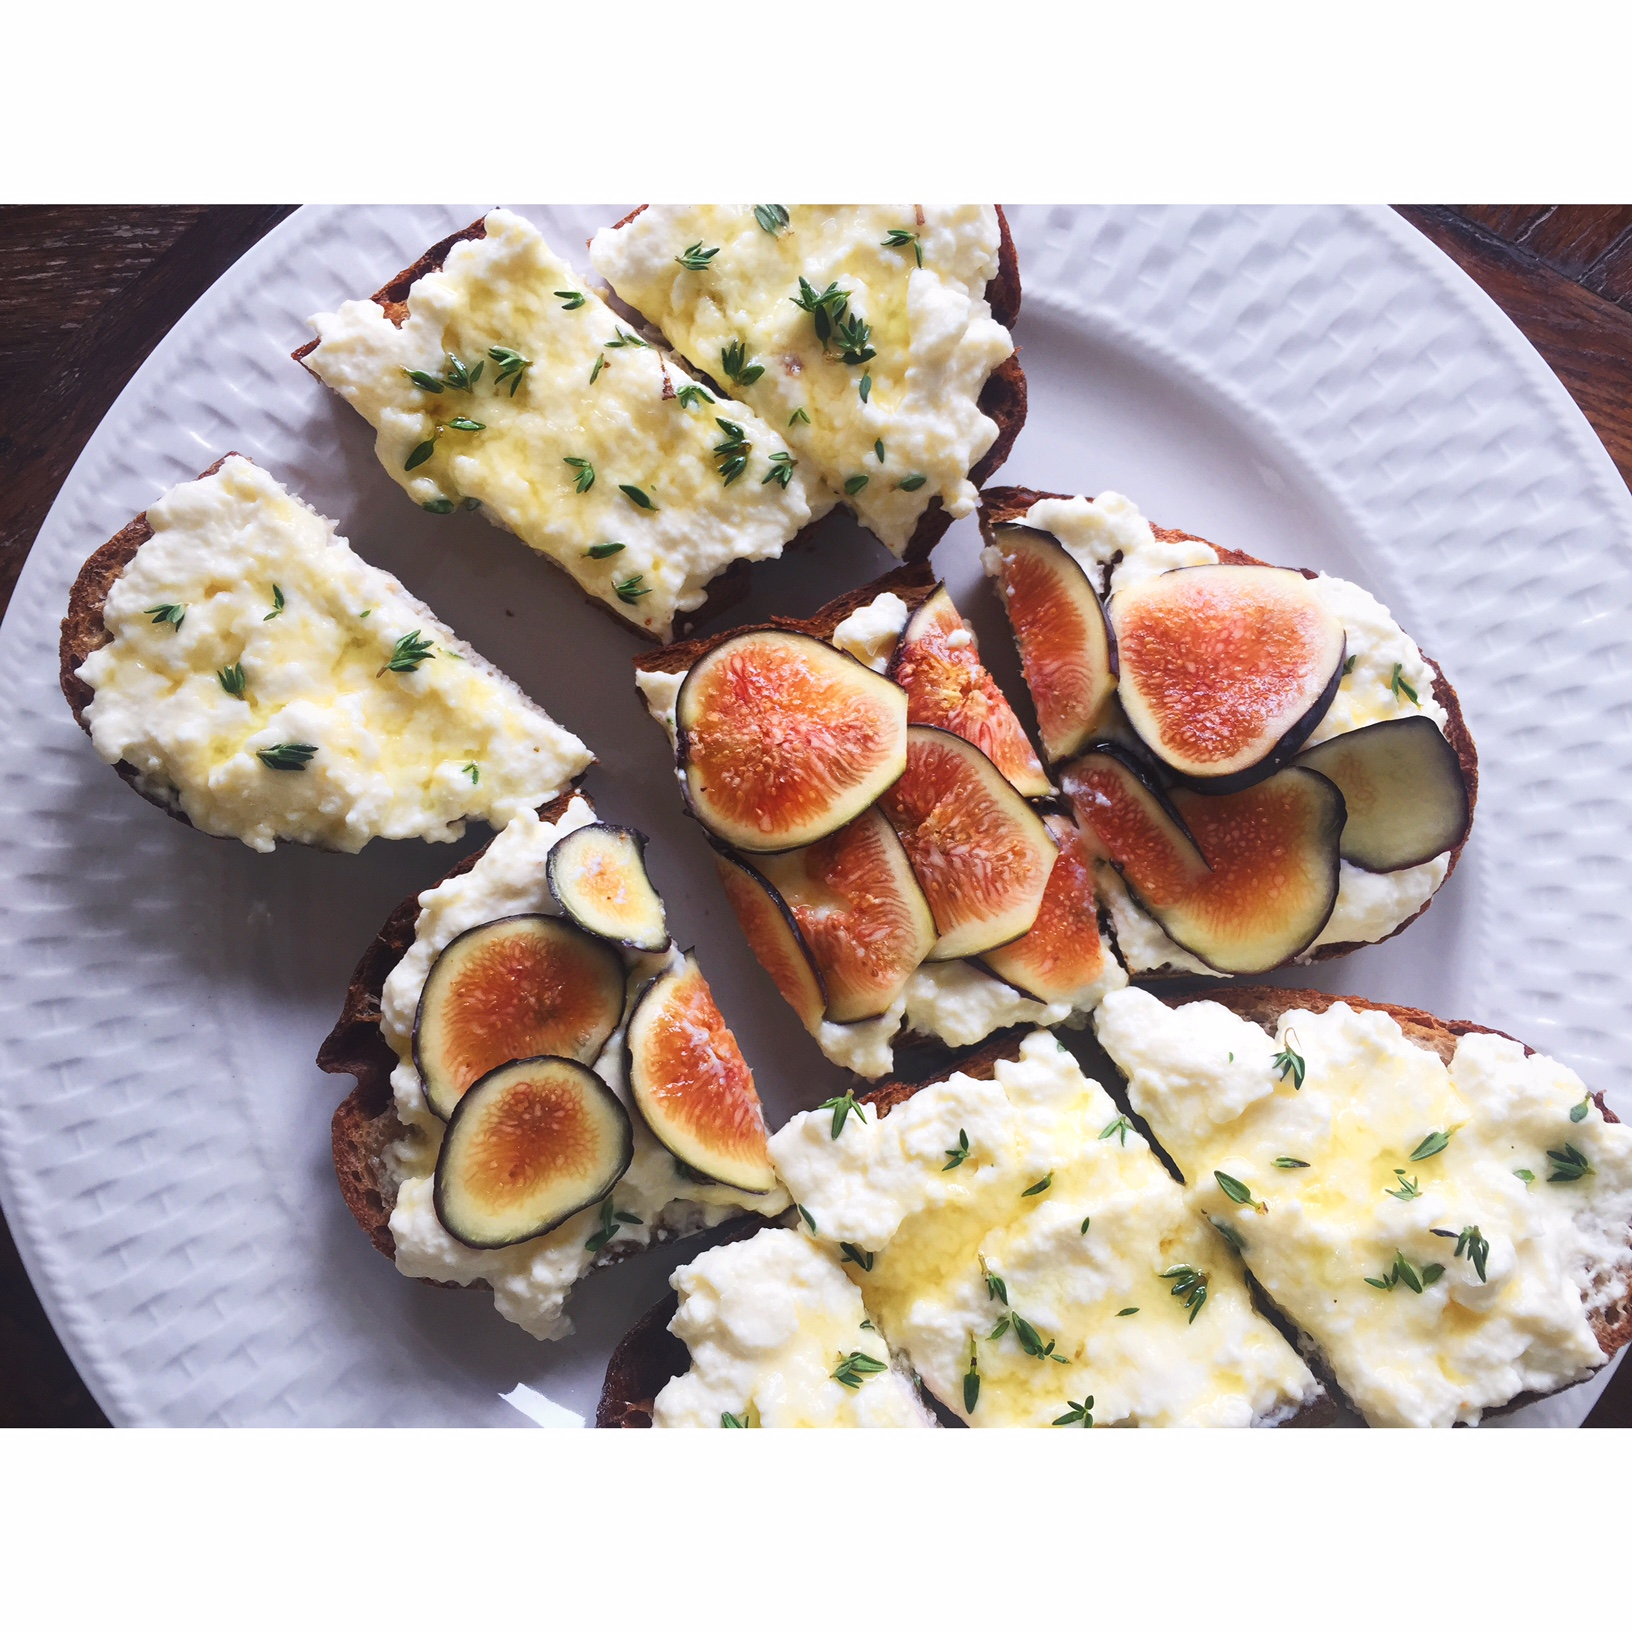 Tartines for brunch! Ricotta with figs or ricotta with honey, thyme and truffle oil.